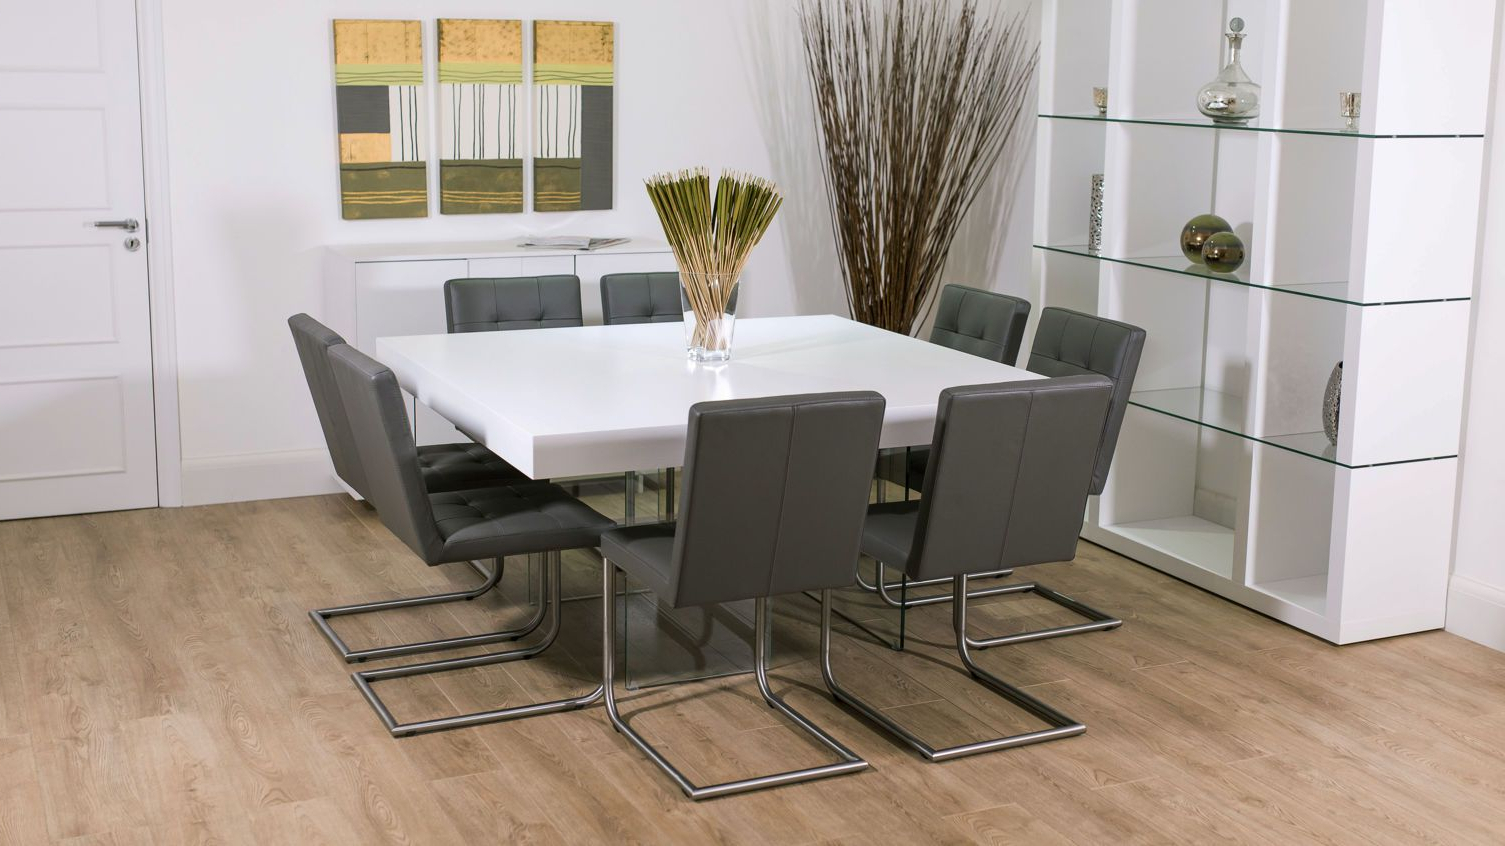 Contemporary 4 Seating Square Dining Tables Intended For Widely Used 8 Seater Square Glass Dining Table (View 1 of 25)